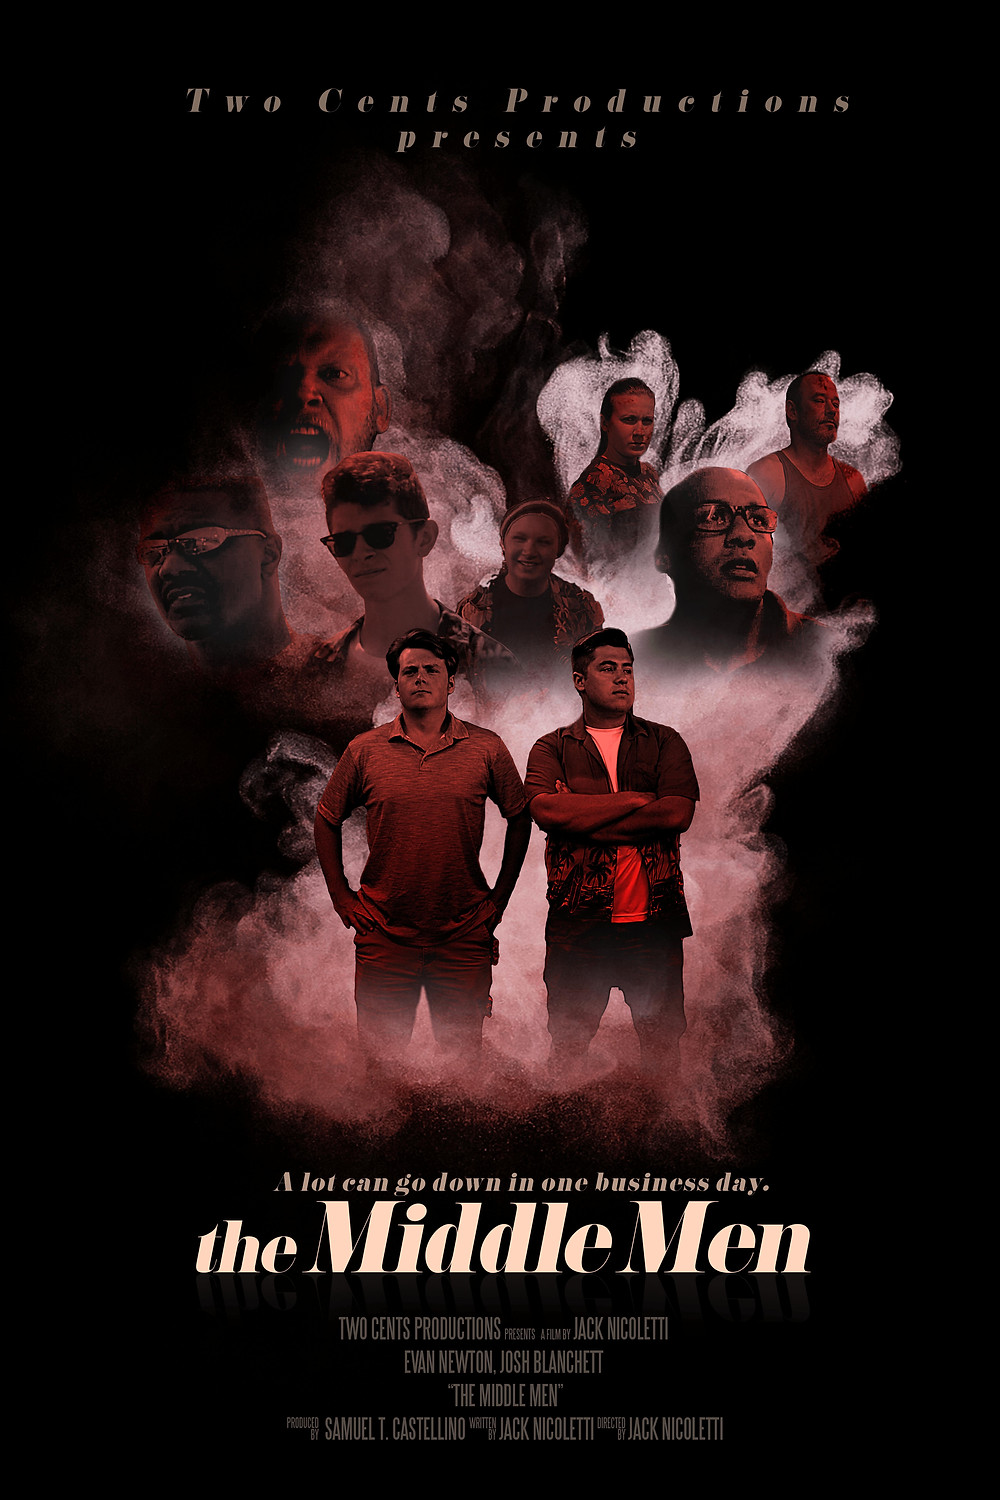 Poster for The Middle Men showing protagonists.